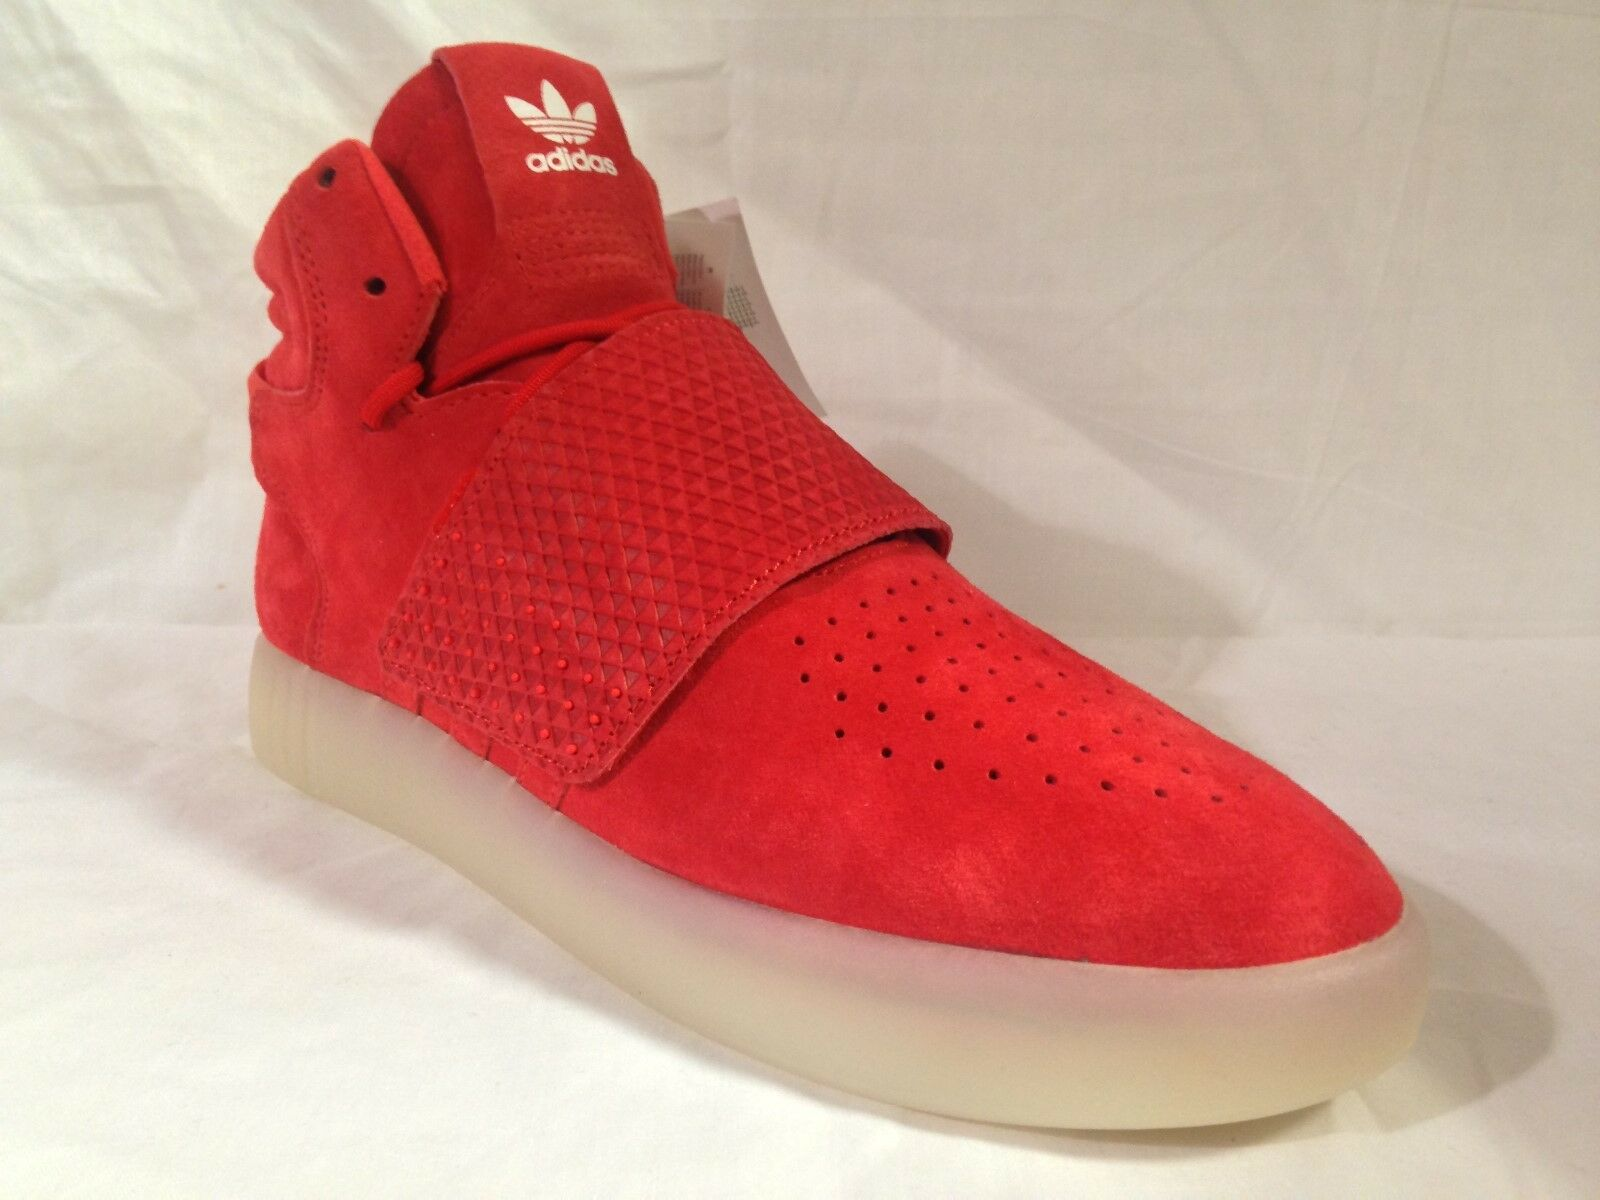 Hommes adidas tubulaire invader sangle sangle sangle rouge/rouge/gomme BB5039 tailles: uk 8.5 _ 9 _ 9.5 f64b76